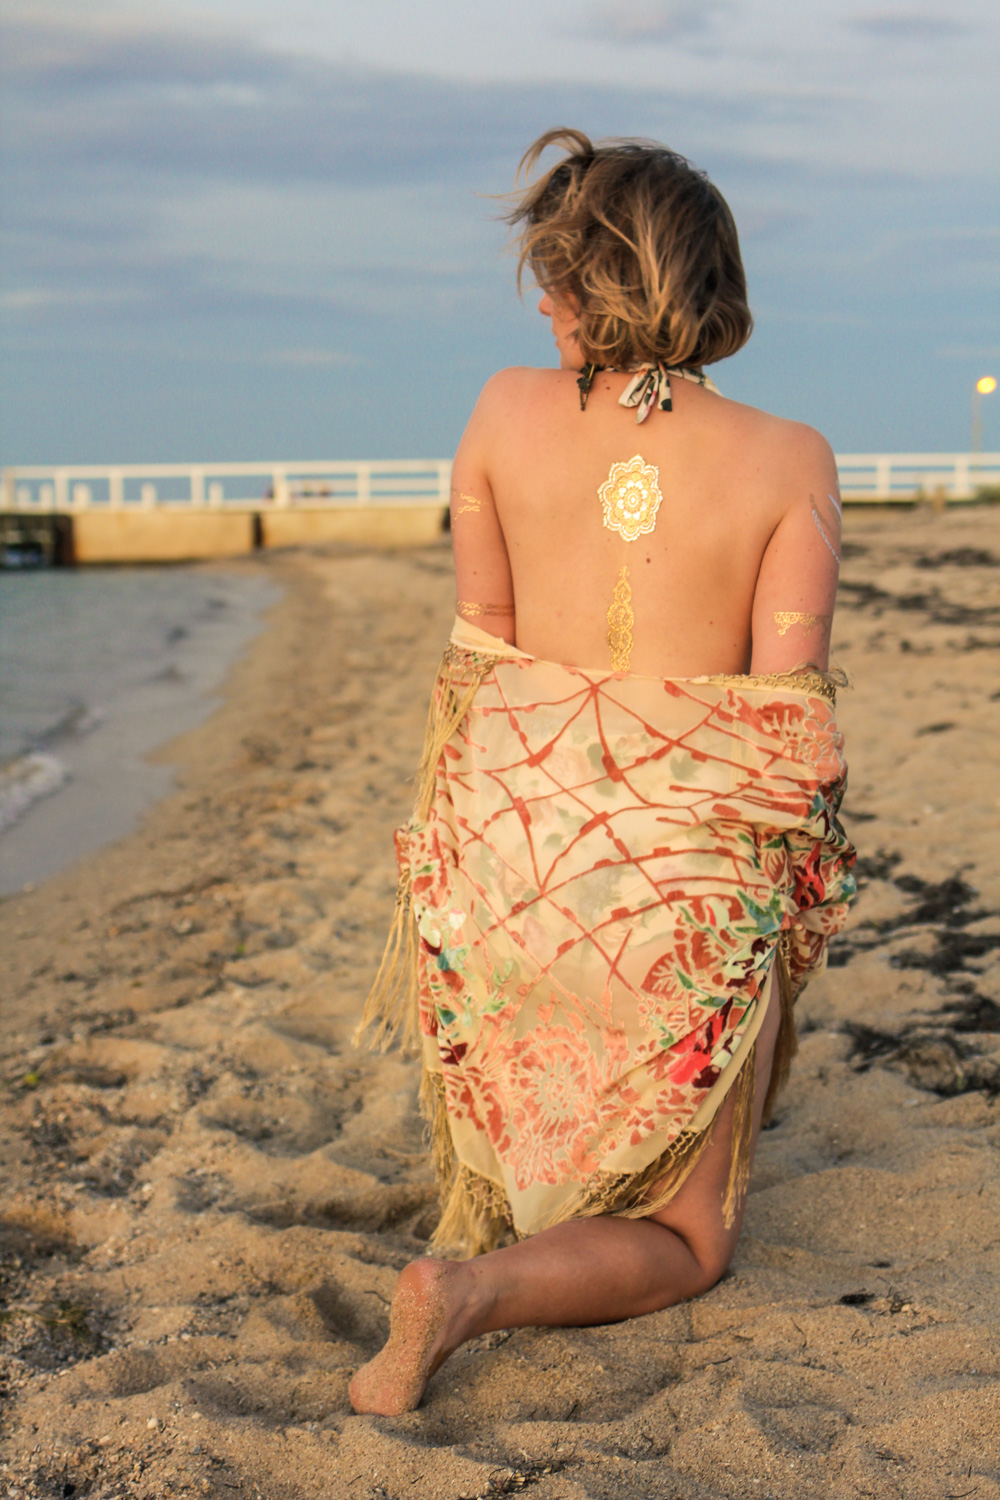 @findingfemme wears floral Bikiniboo swimsuit and flocked velvet shawl with gold tattoos.